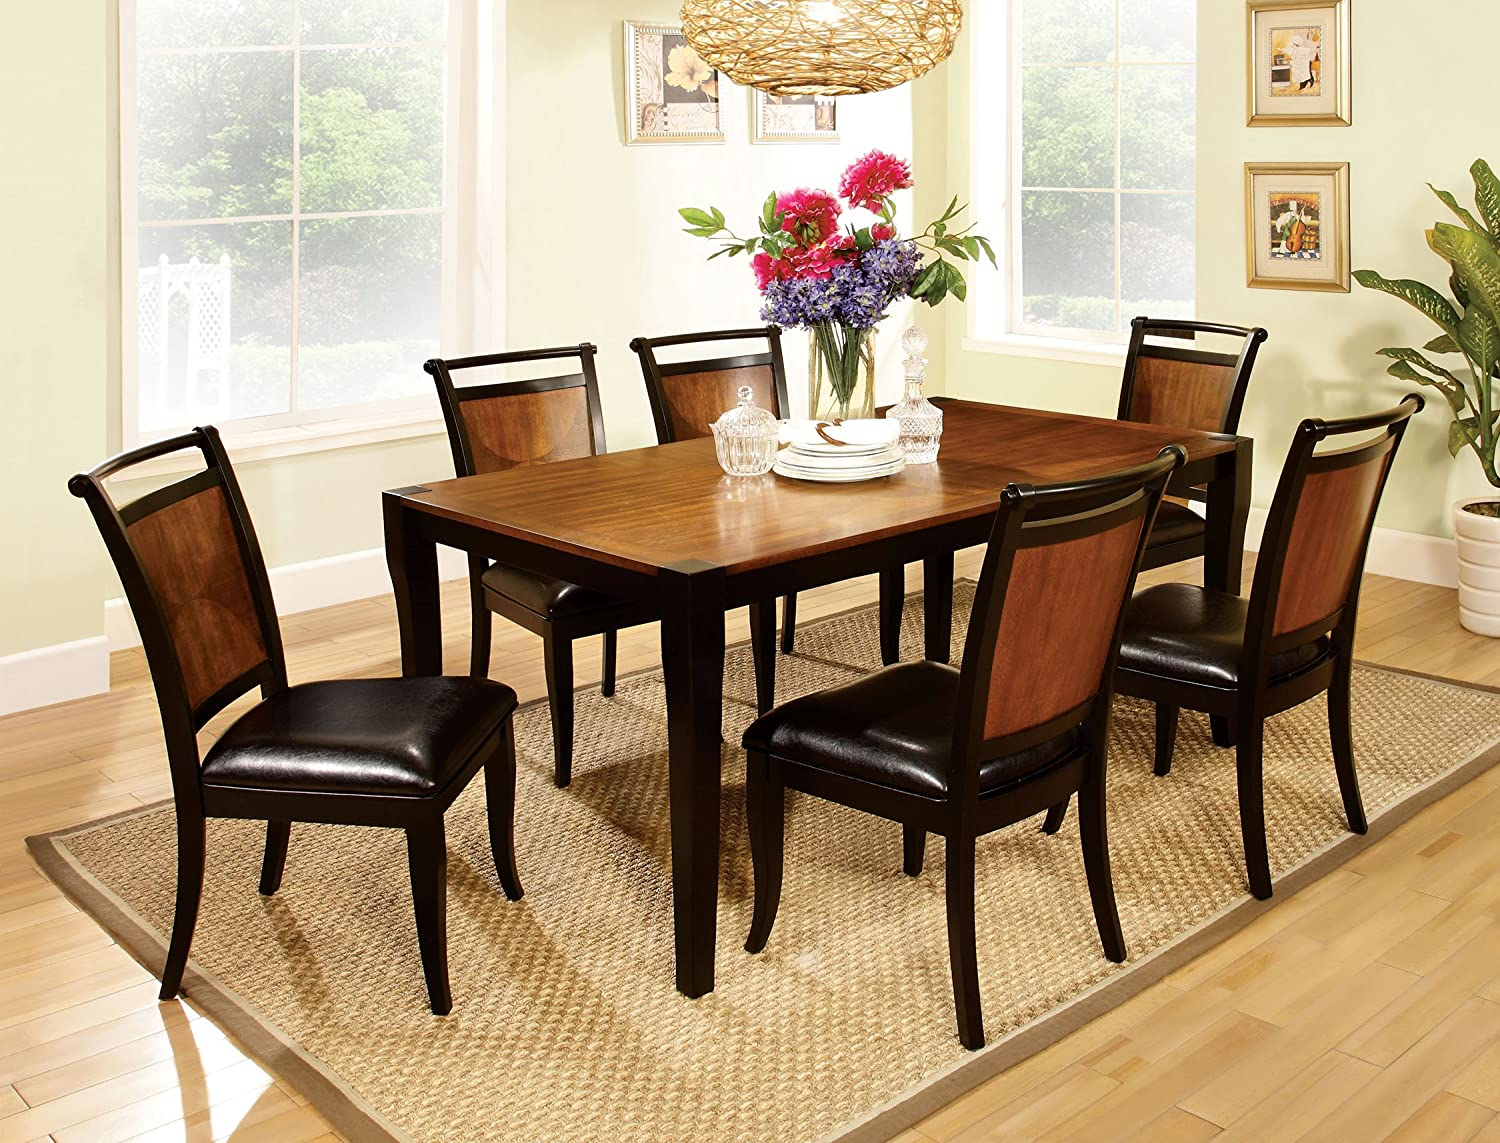 Furniture of America Sahrifa 7-Piece Duotone Dining Table Set, Acacia and Black Finish